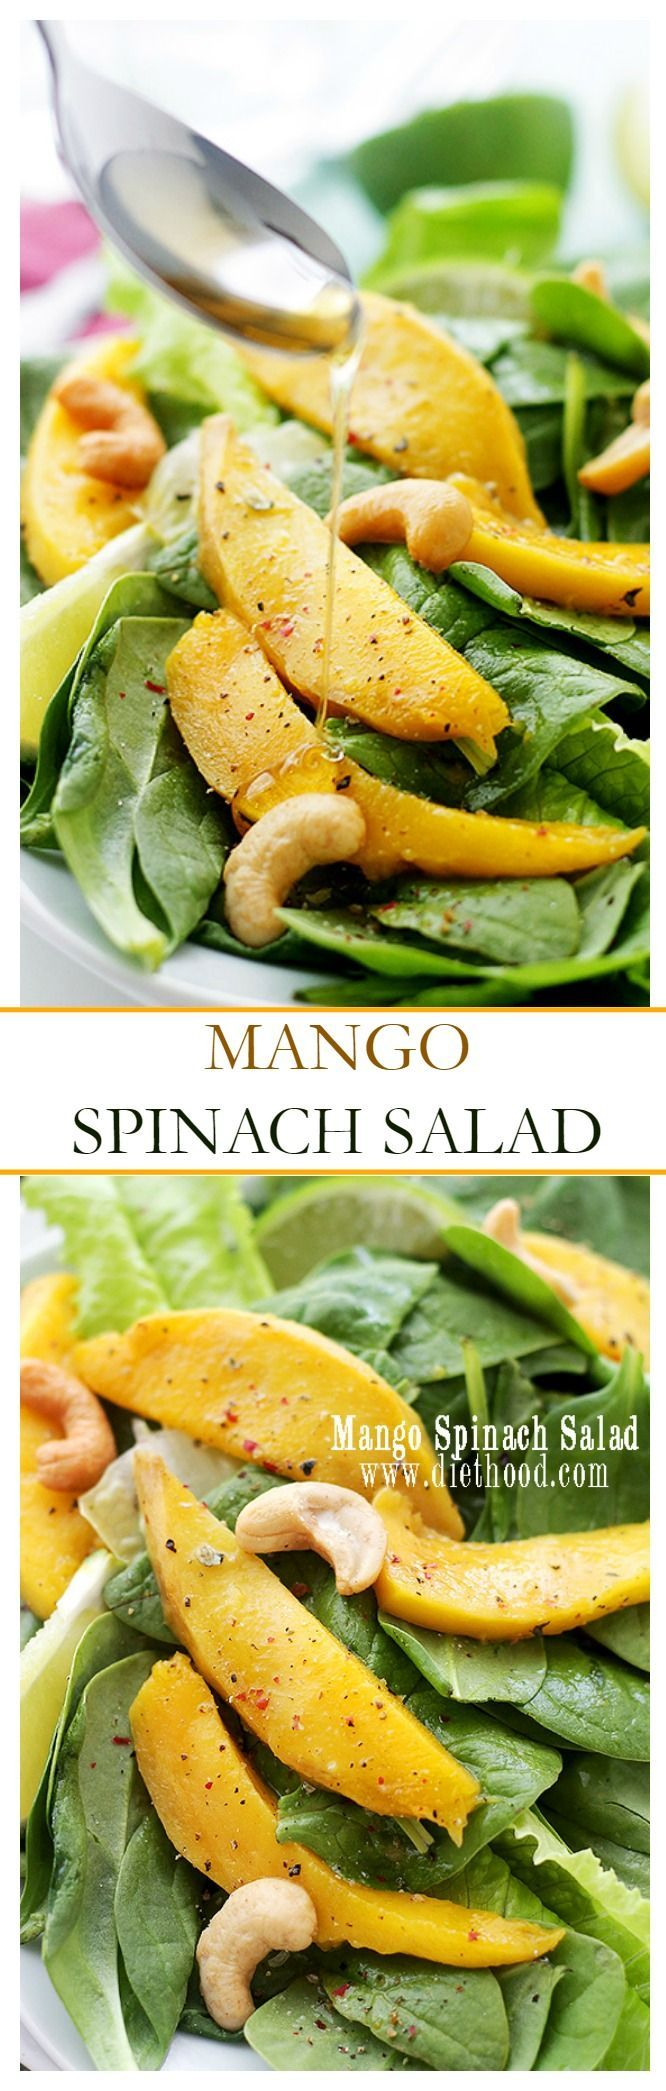 Mango Spinach Salad - Baby Spinach leaves tossed with slices of fresh mango, cashews, and a homemade Honey Lime Dressing.